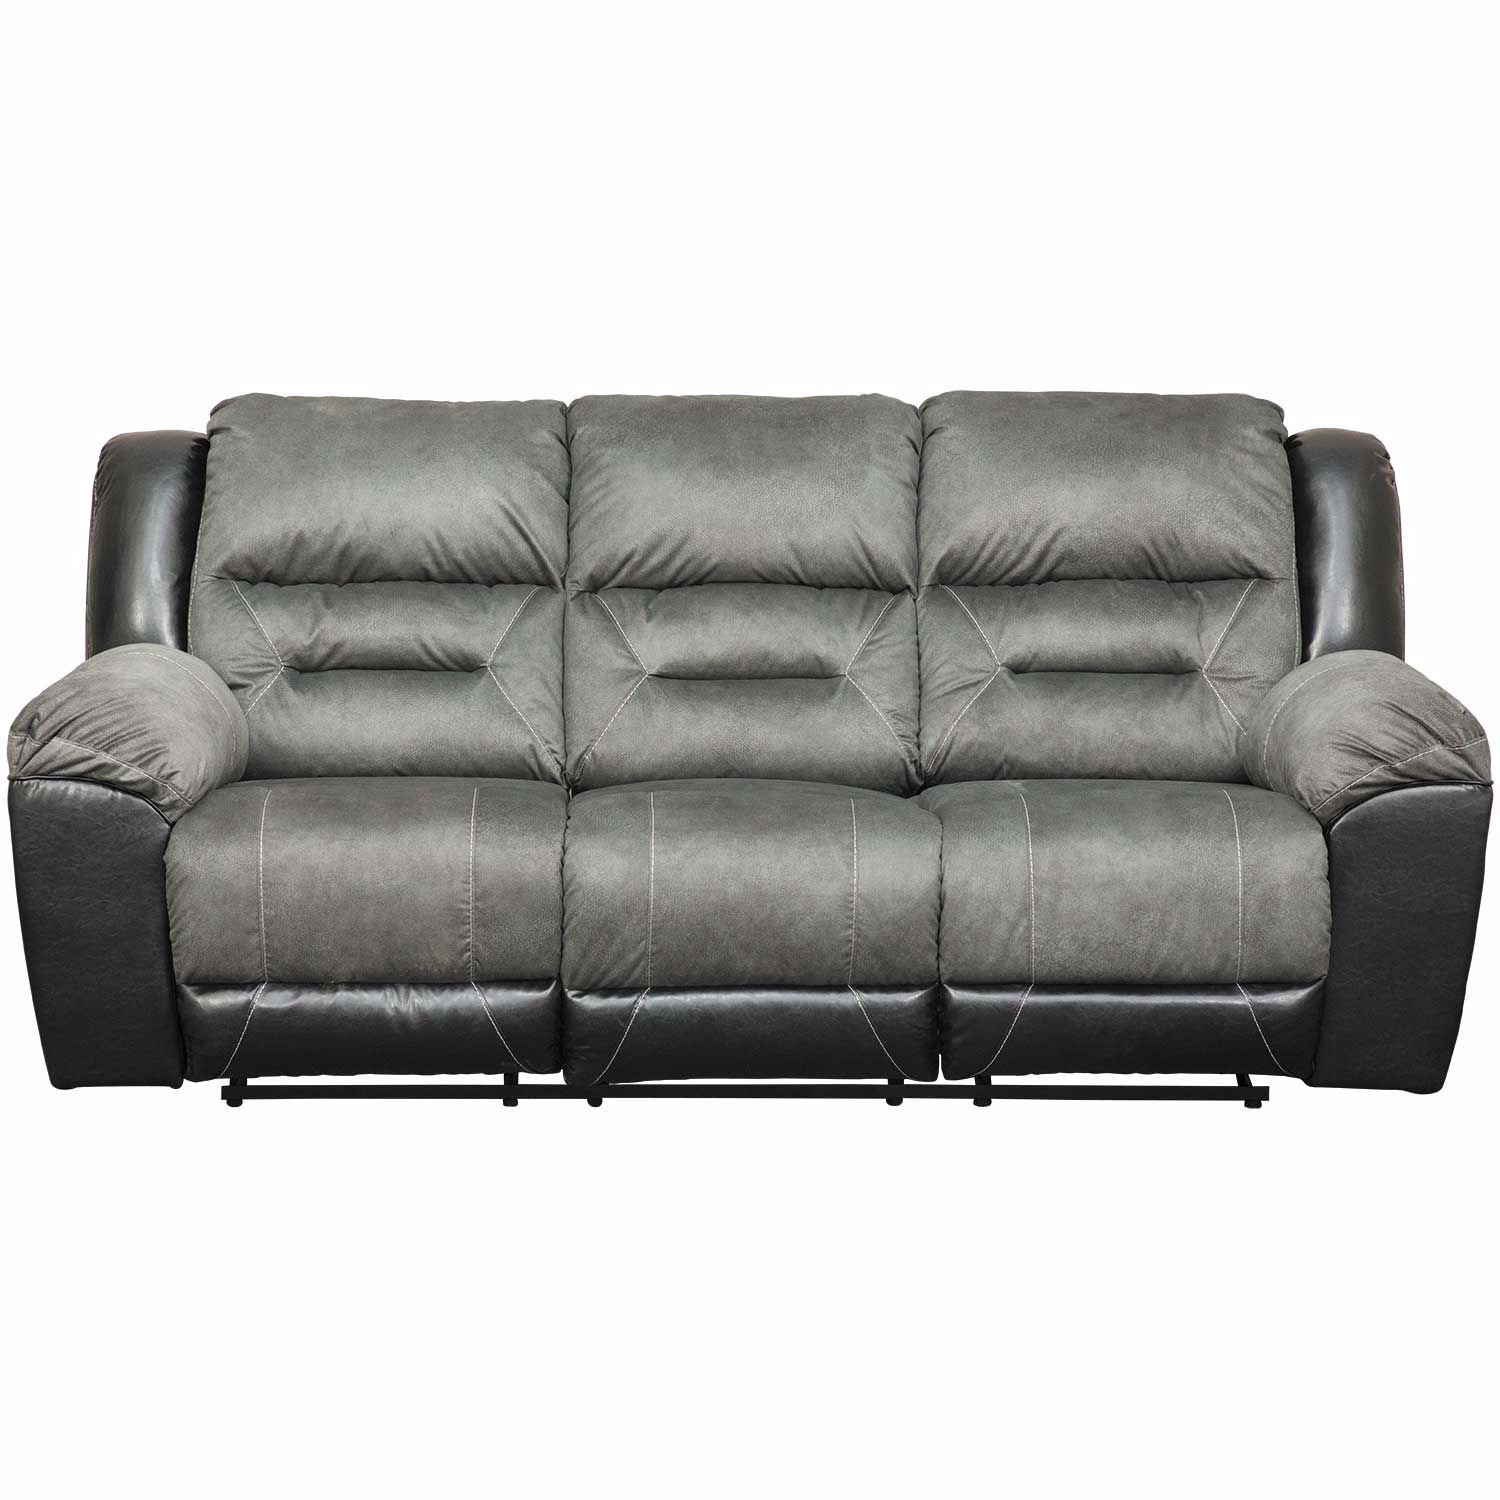 Earhart Slate Reclining Sofa 2910288 Ashley Furniture Afw Com